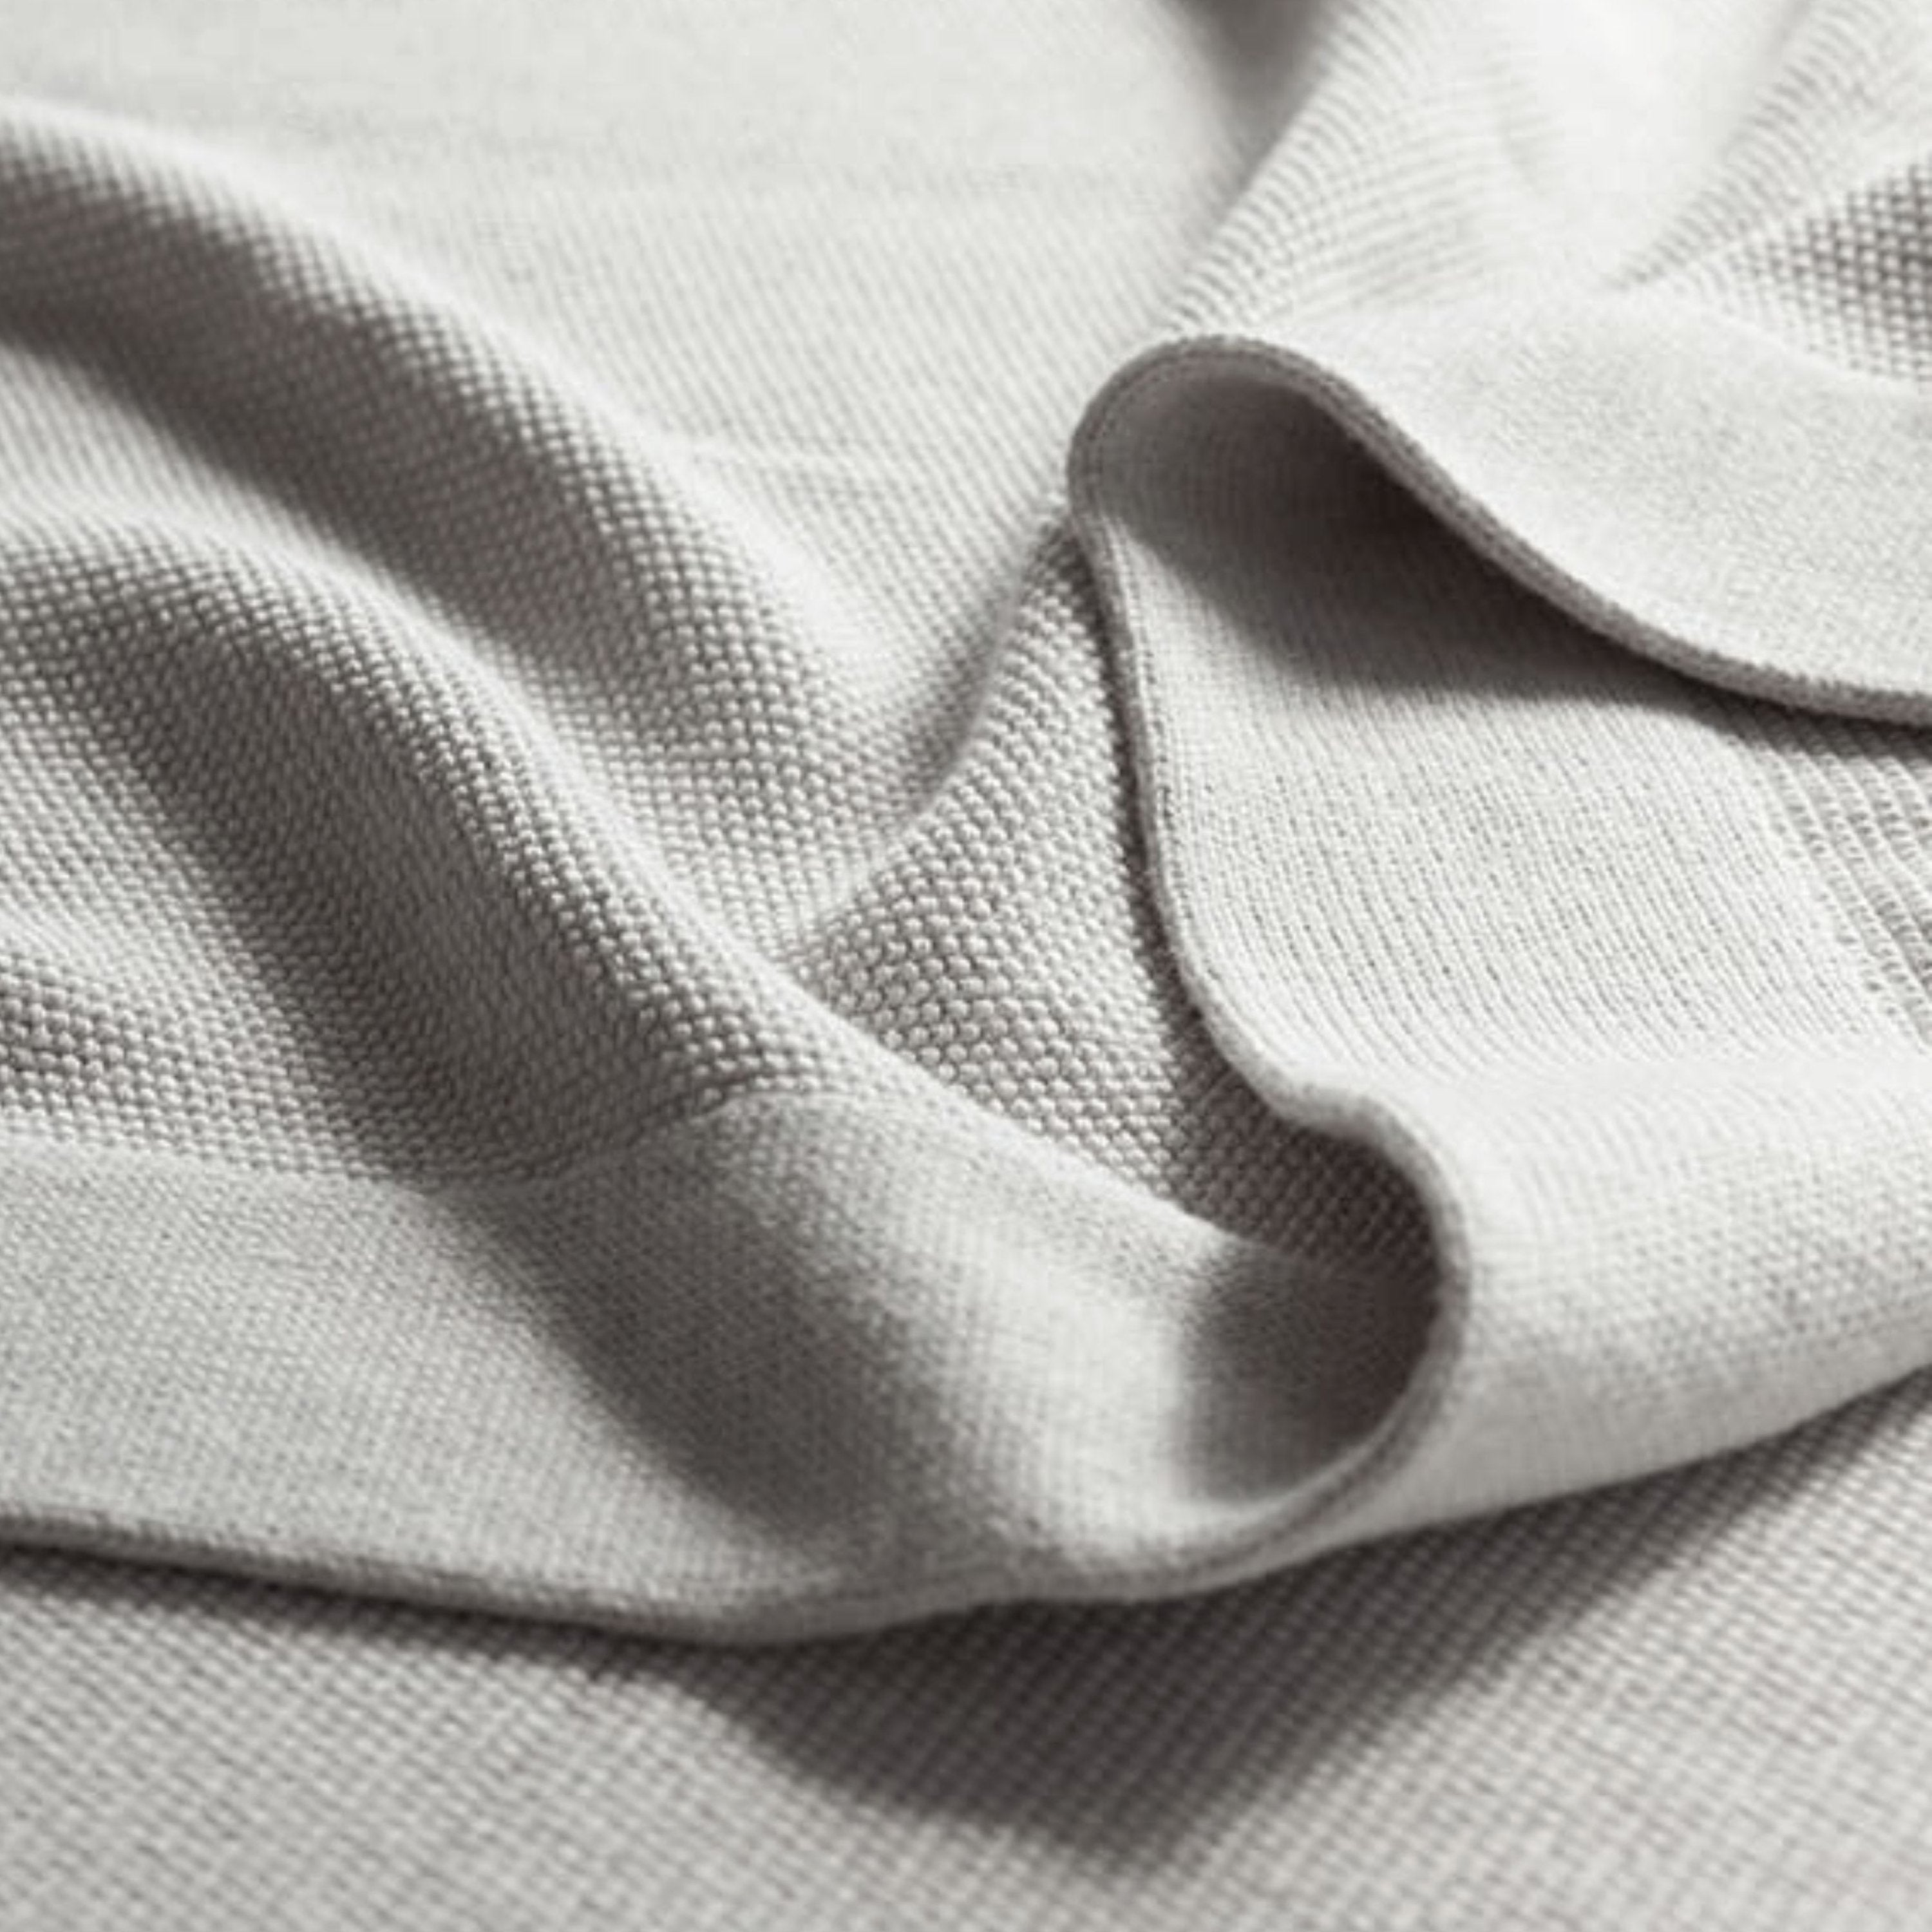 Heirloom Pure Soft Combed Cotton Blanket Throws, made from the highest quality long staple mélange cotton yarns